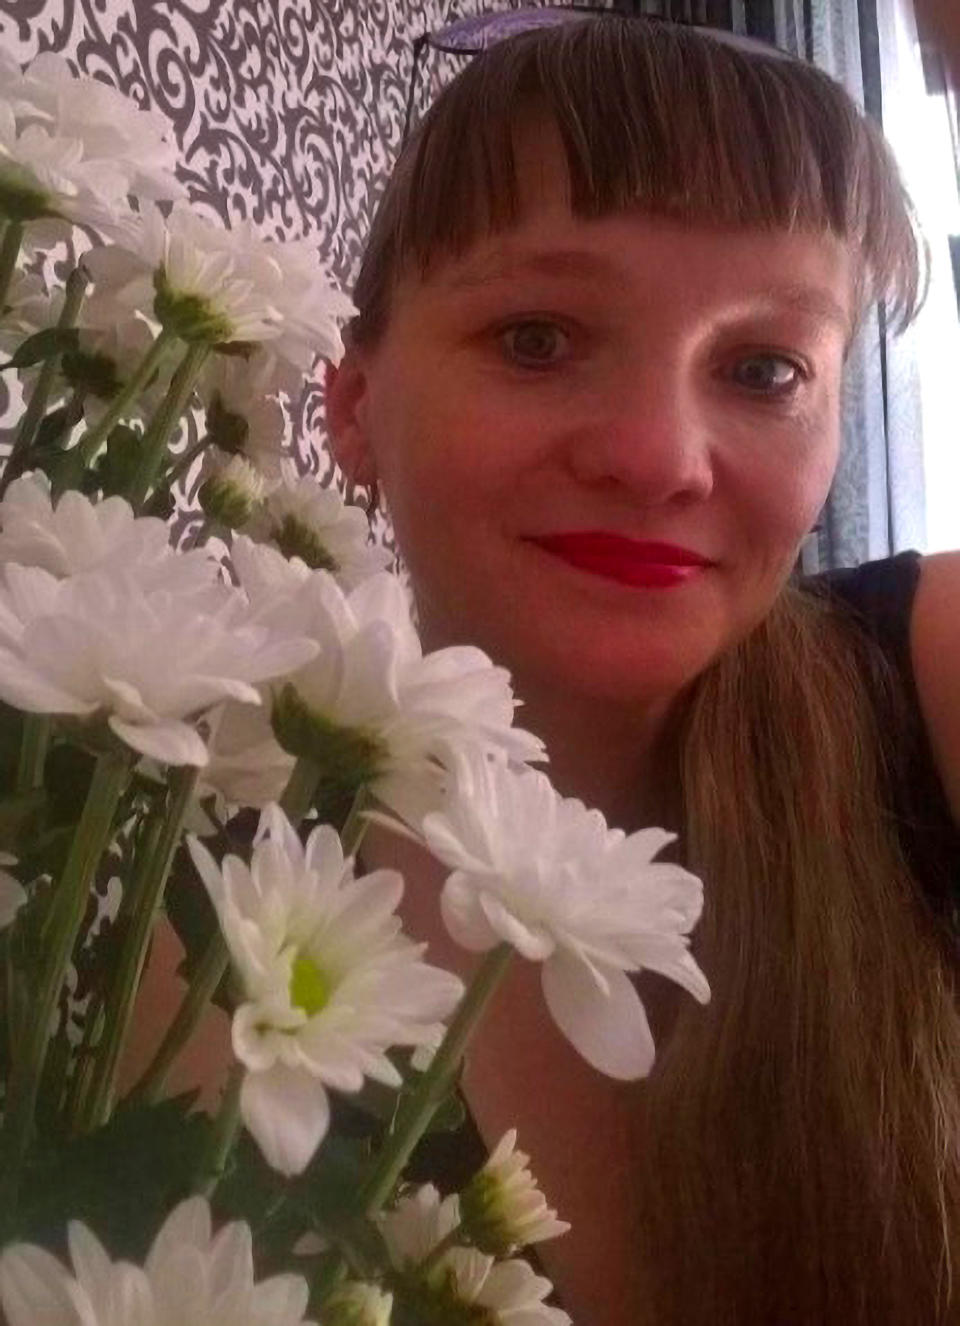 Yulia Zykova is pictured with a bouquet of flowers. She is accused of keeping her unwanted baby in a closet.